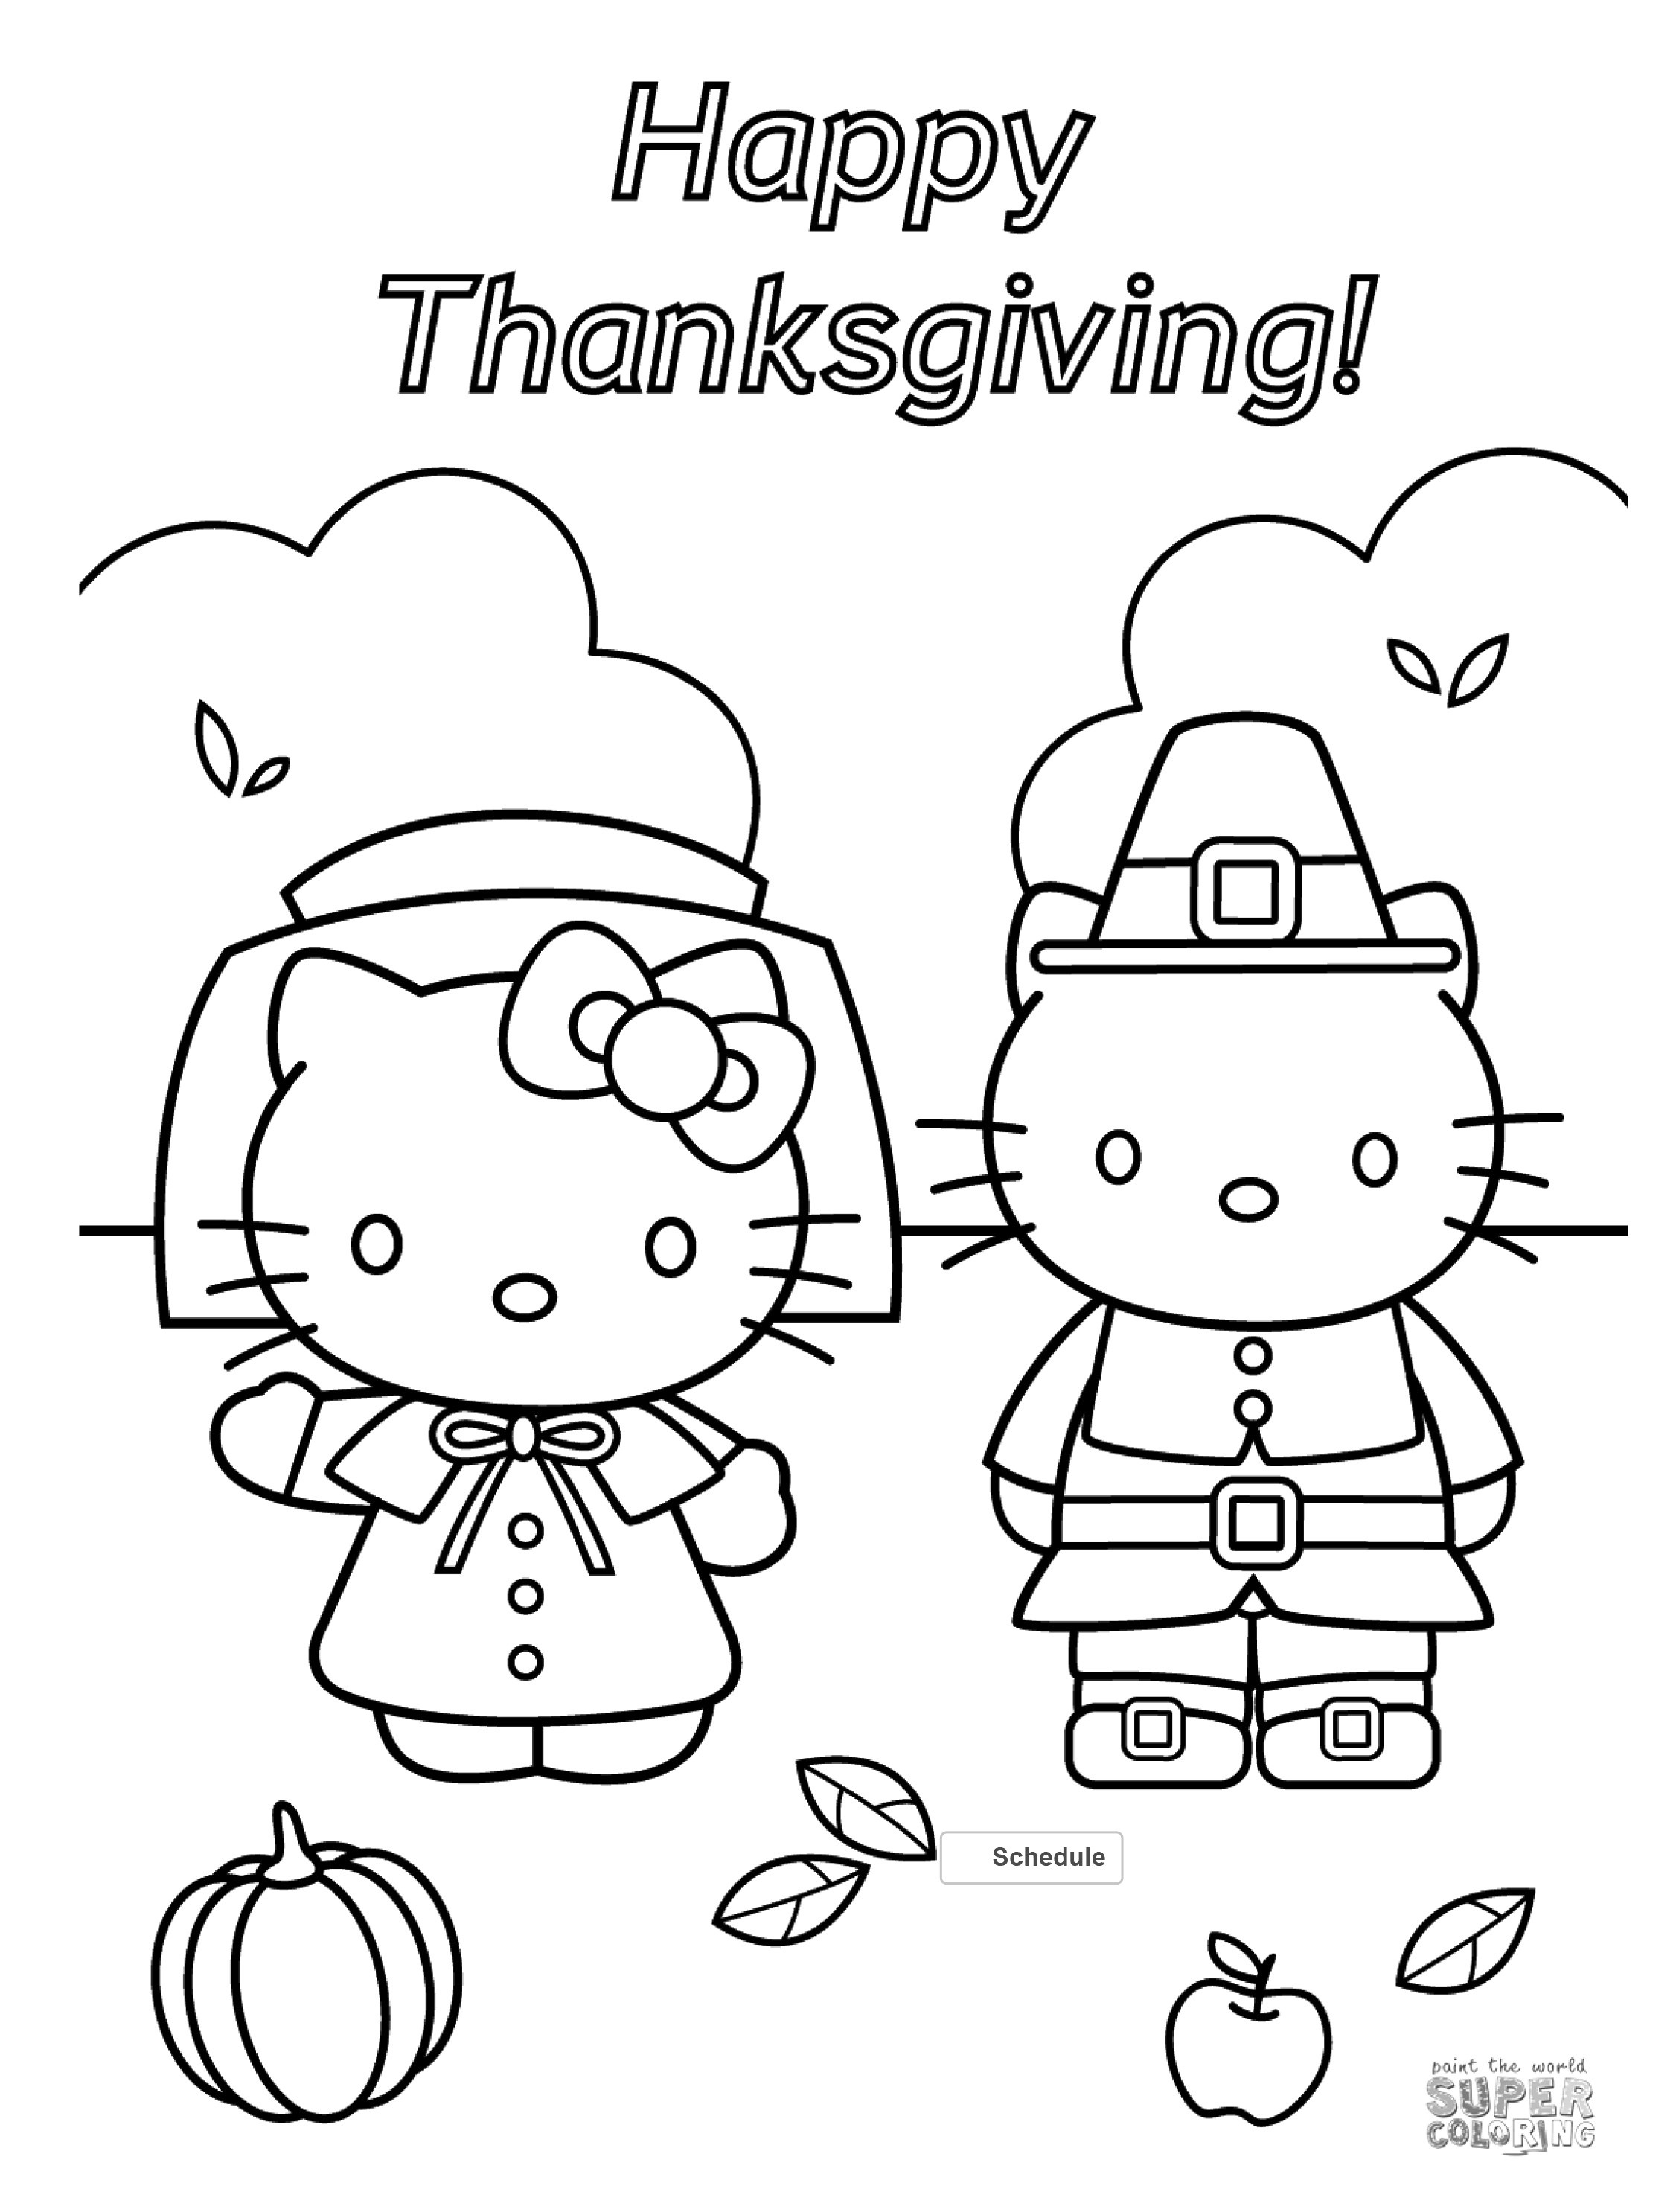 Thanksgiving Color Pages Hello Kitty Thanksgiving Coloring Page Free - Free Printable Thanksgiving Coloring Pages